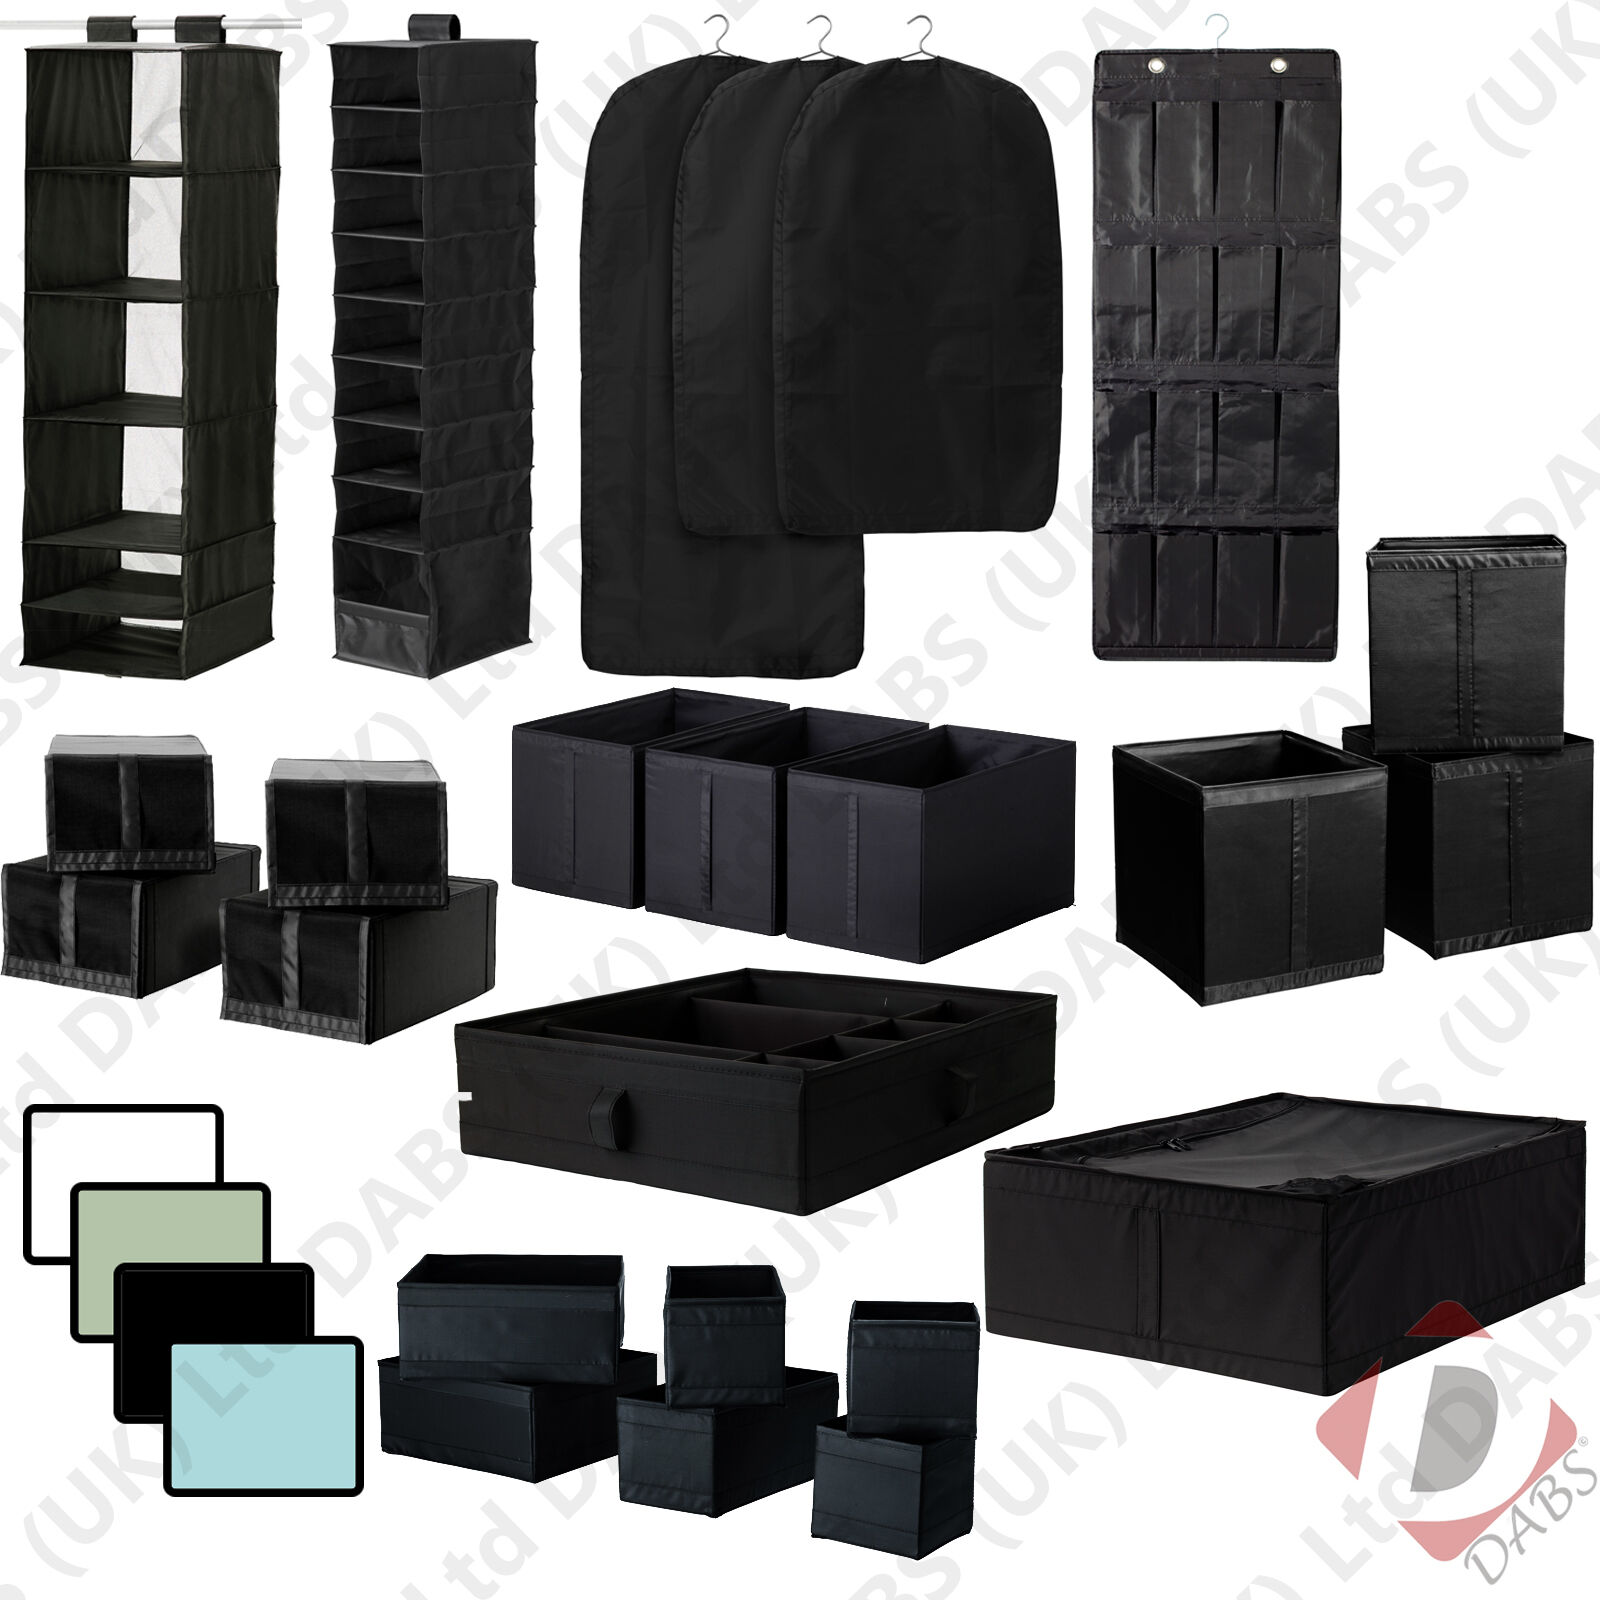 Ikea skubb hanging bedroom wardrobe clothes organiser shoe and storage boxes ebay - Types of shoe storage solutions for the bedroom ...